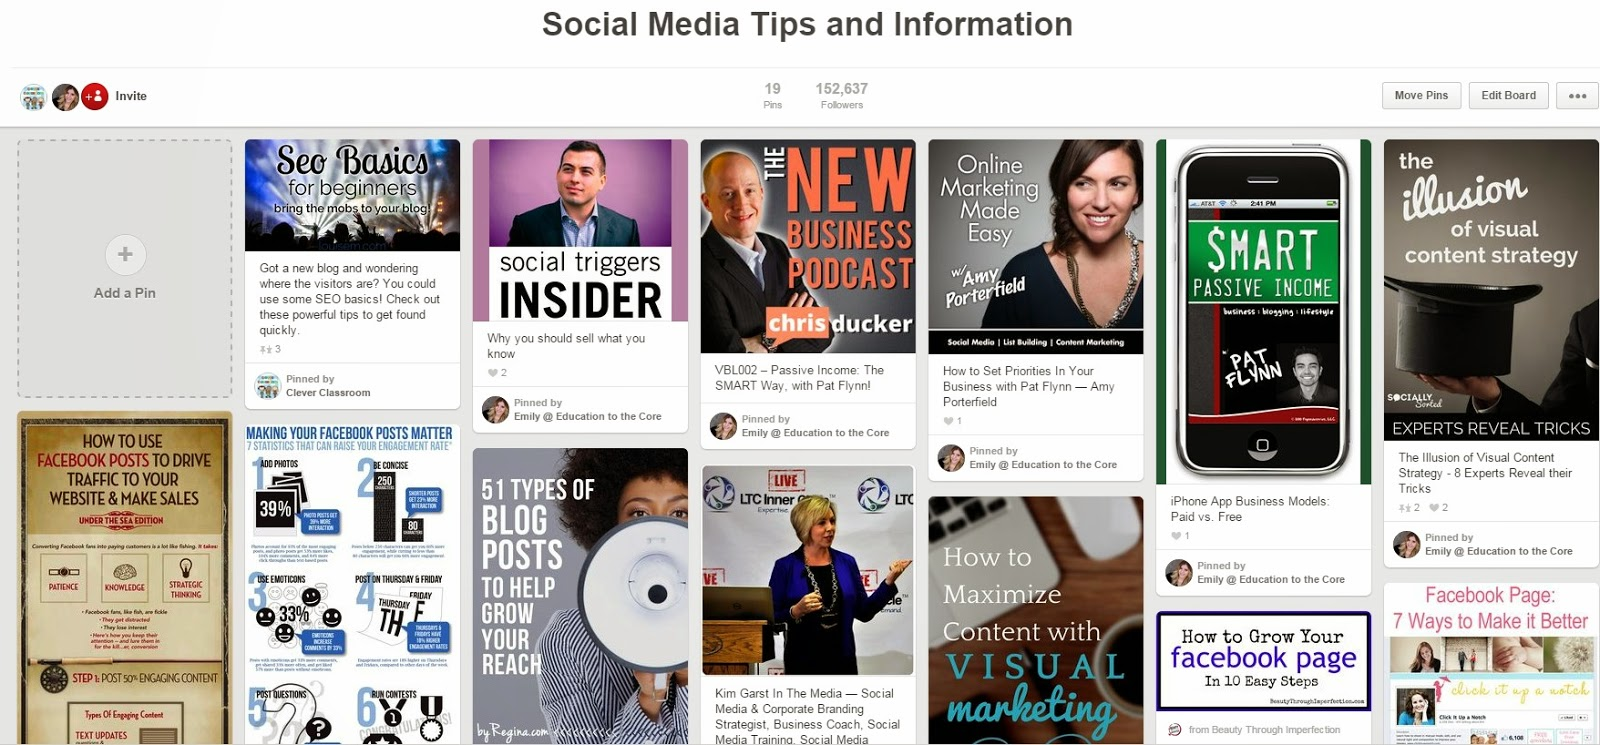 Social Media Tips and Information